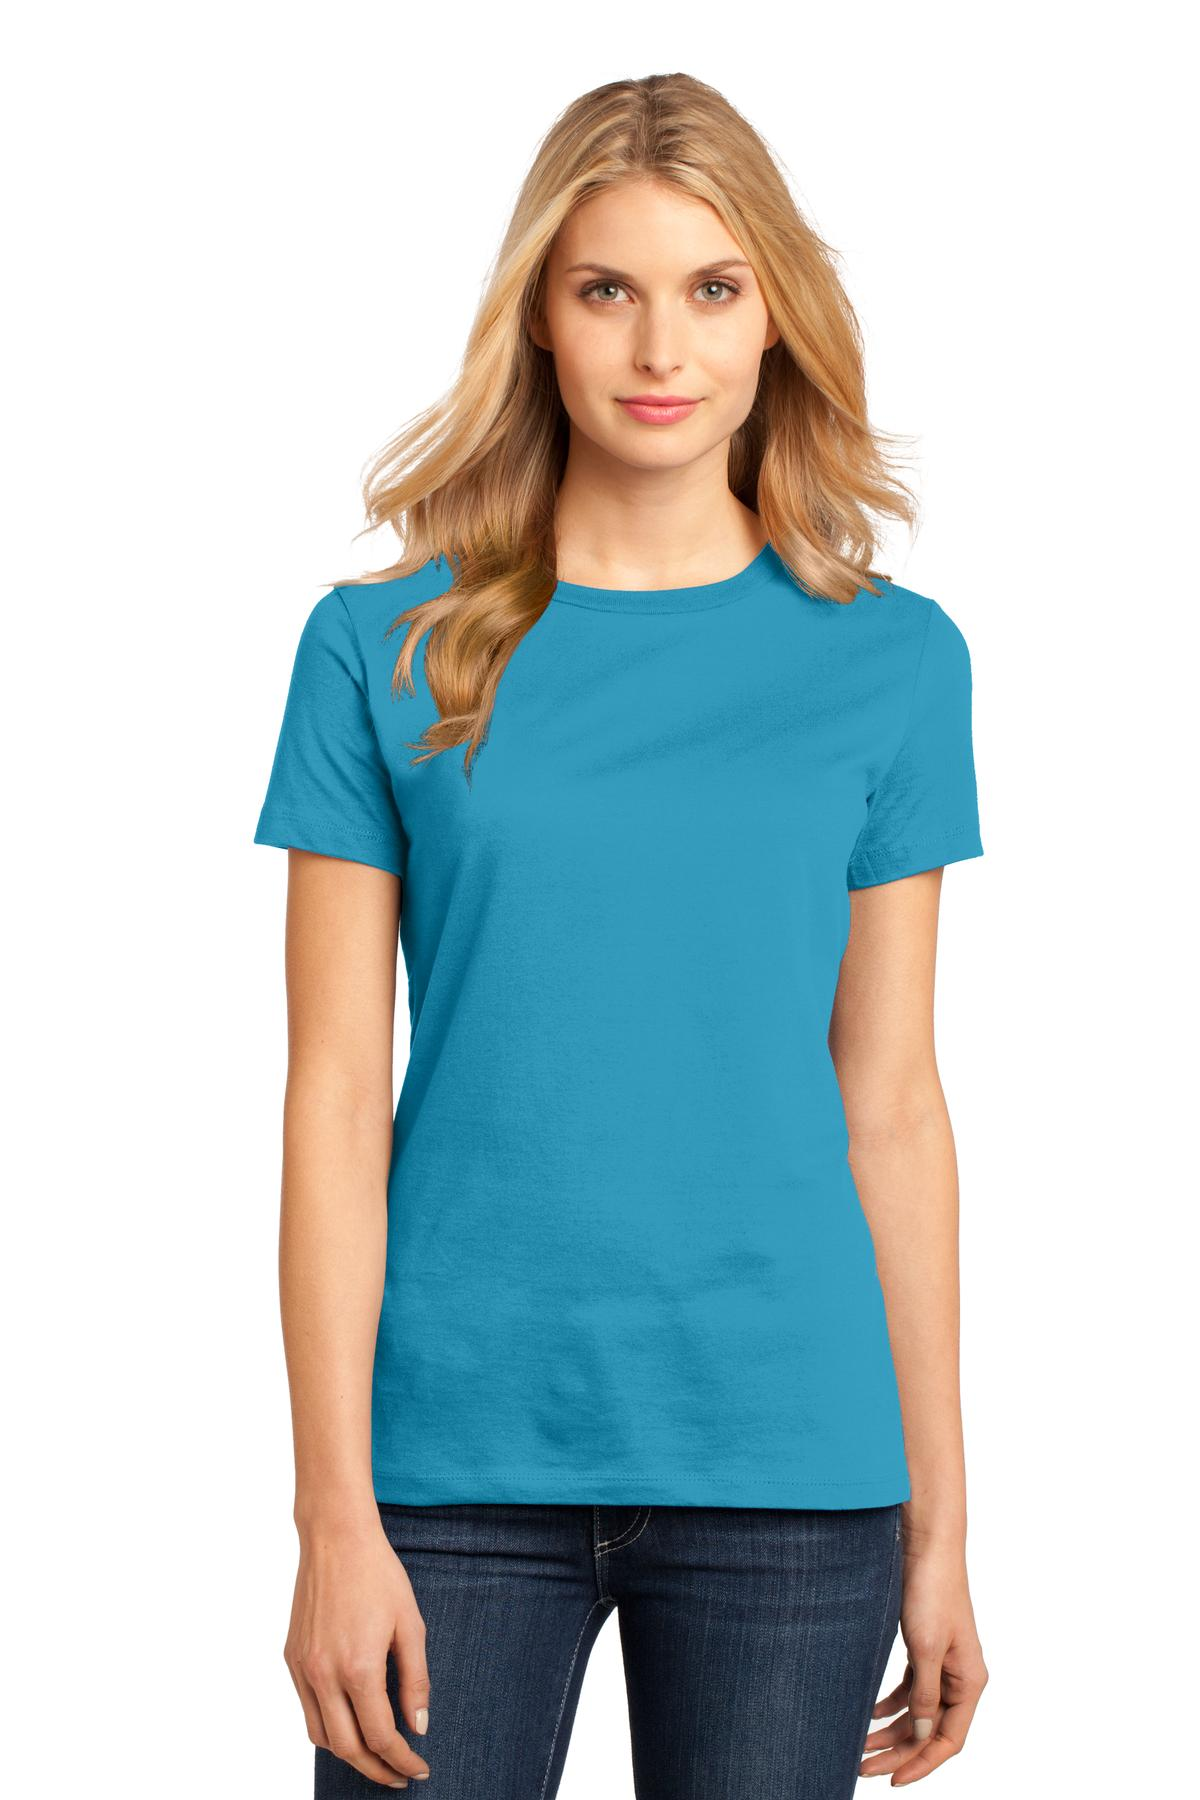 District ®  Women's Perfect Weight ® Tee. DM104L - Bright Turquoise